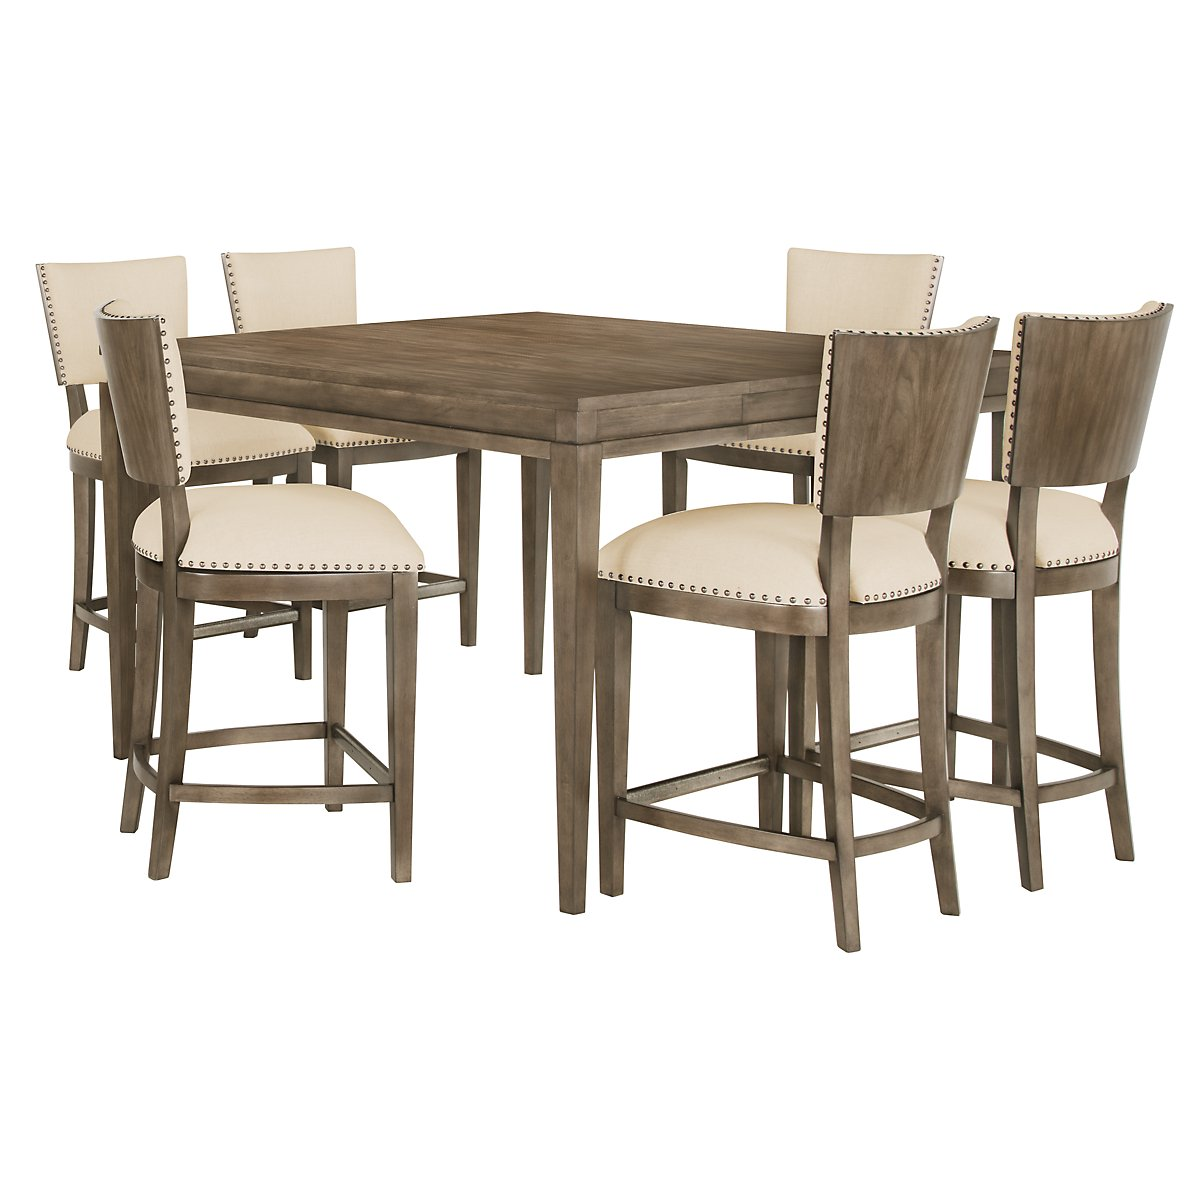 Preston Gray Wood High Table & 4 Upholstered Barstools